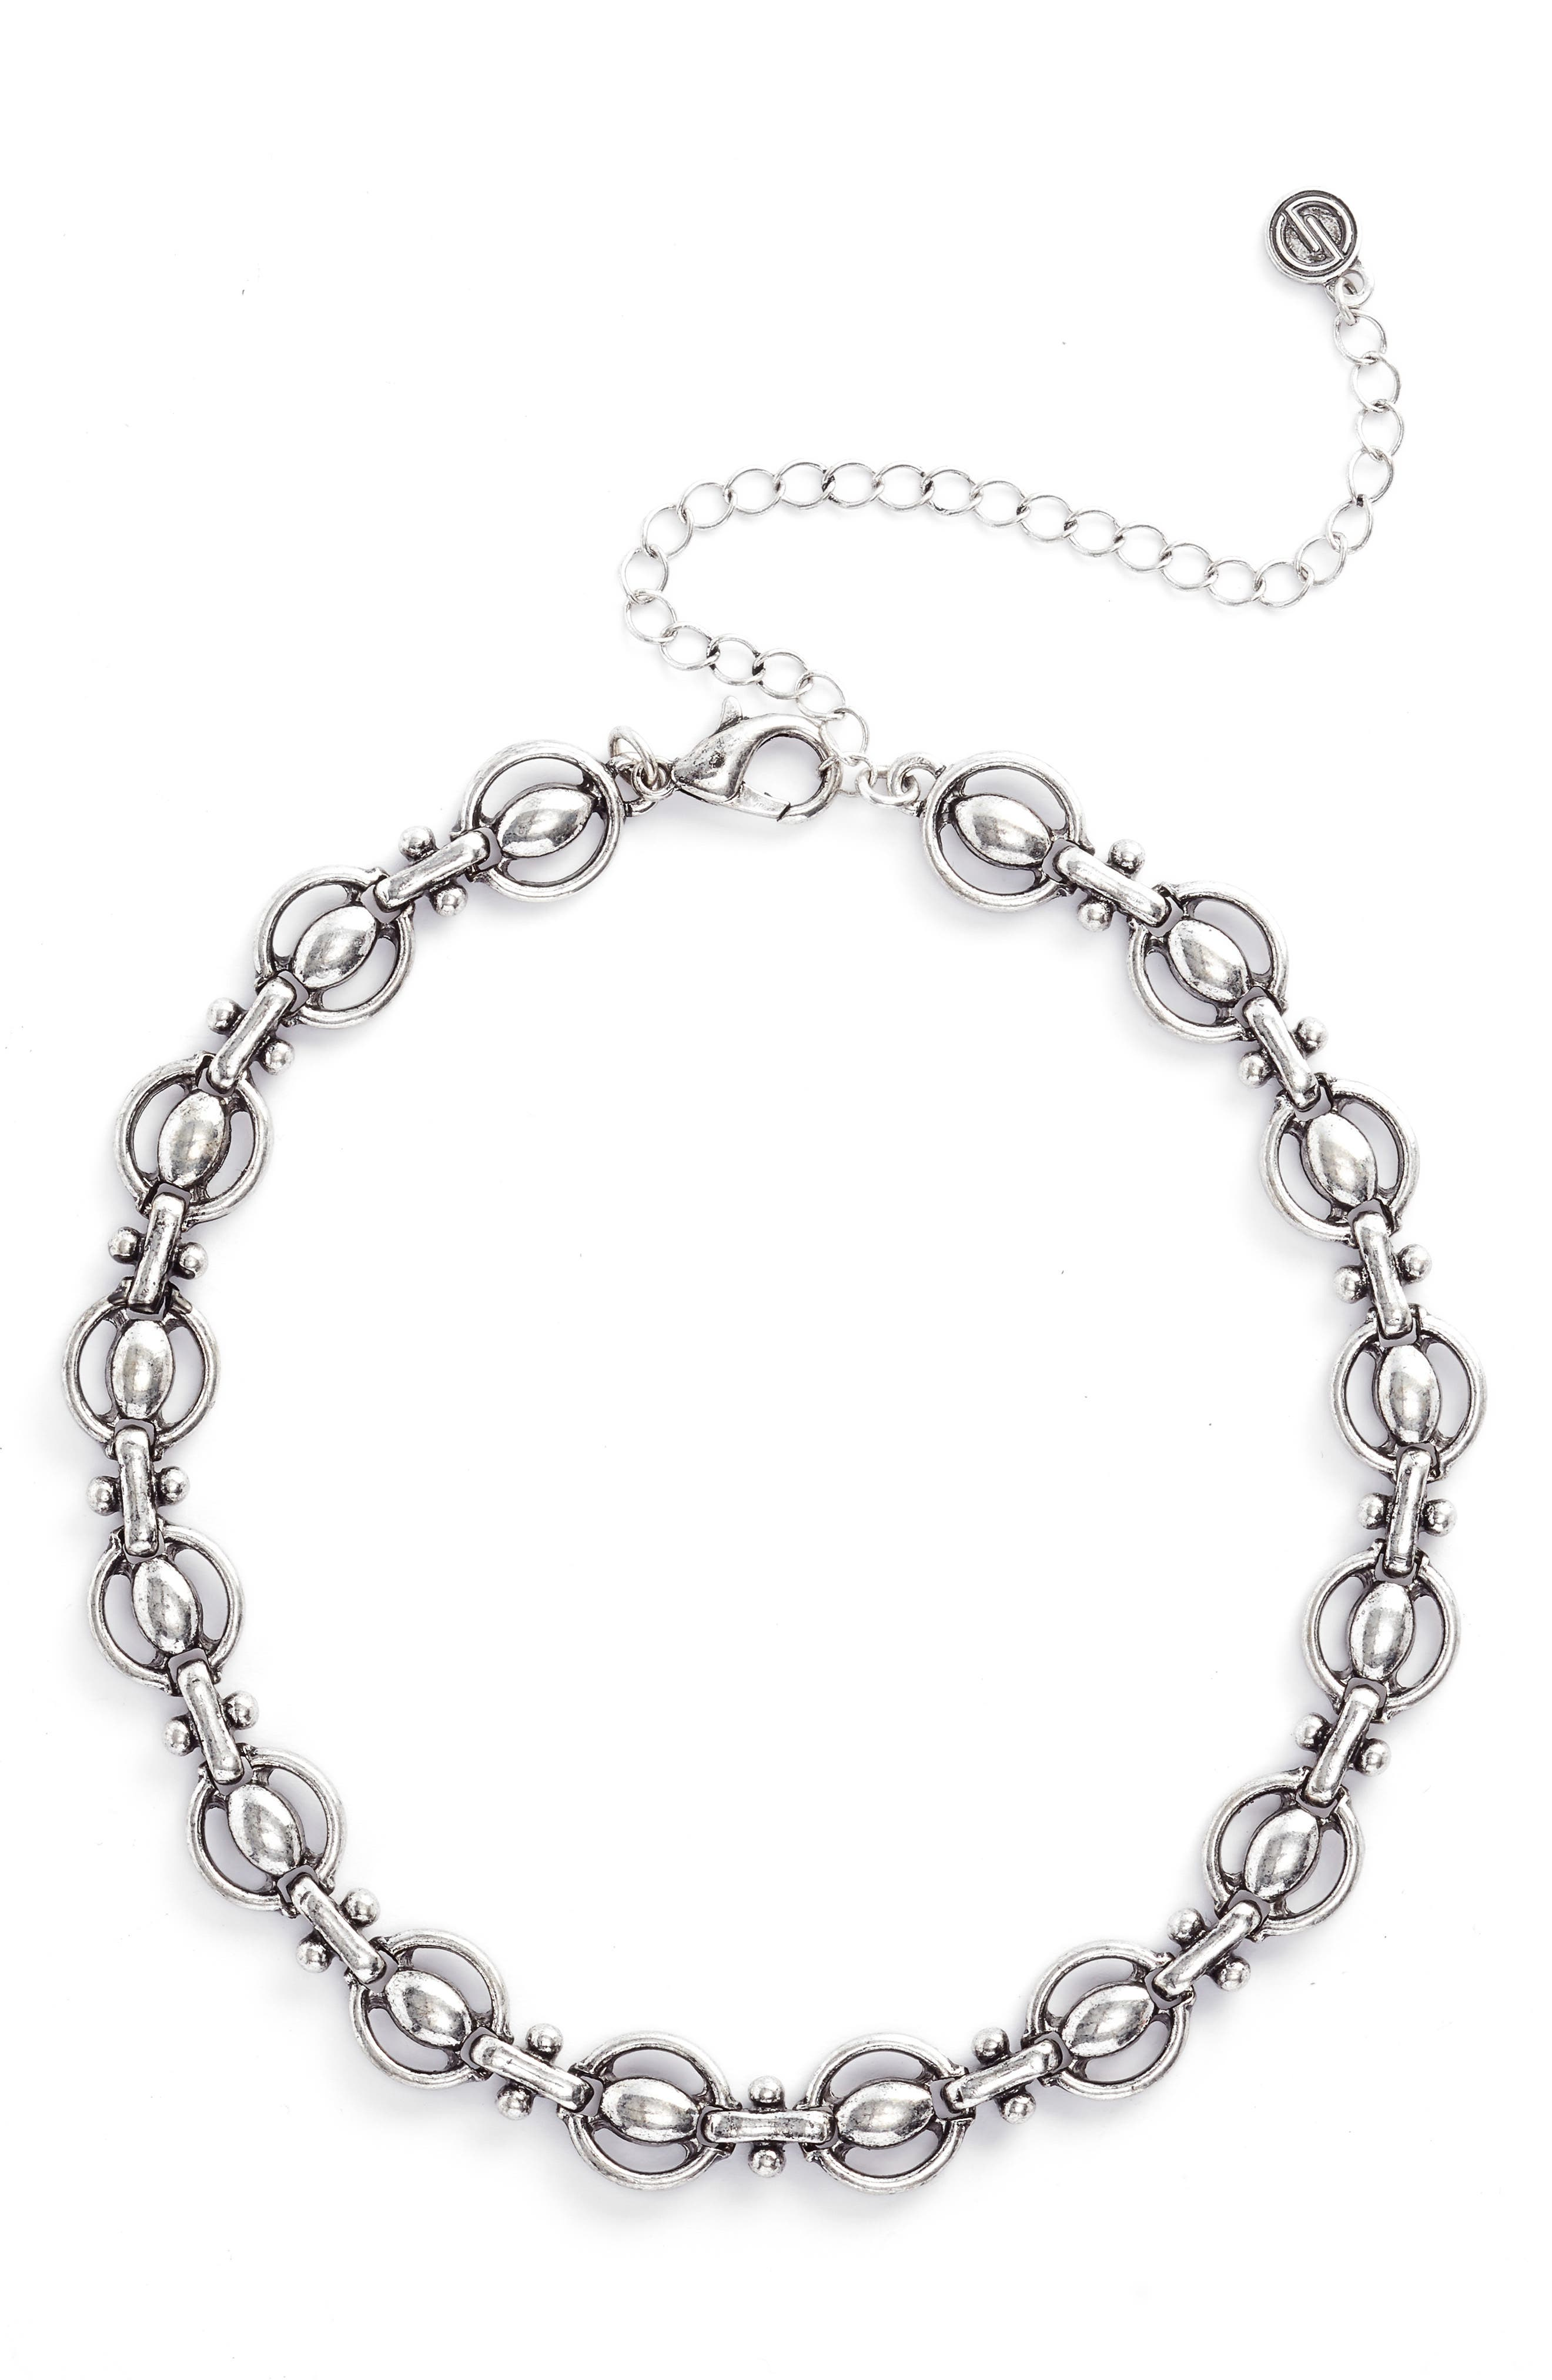 Main Image - DLNLX BY DYLANLEX Chain Choker